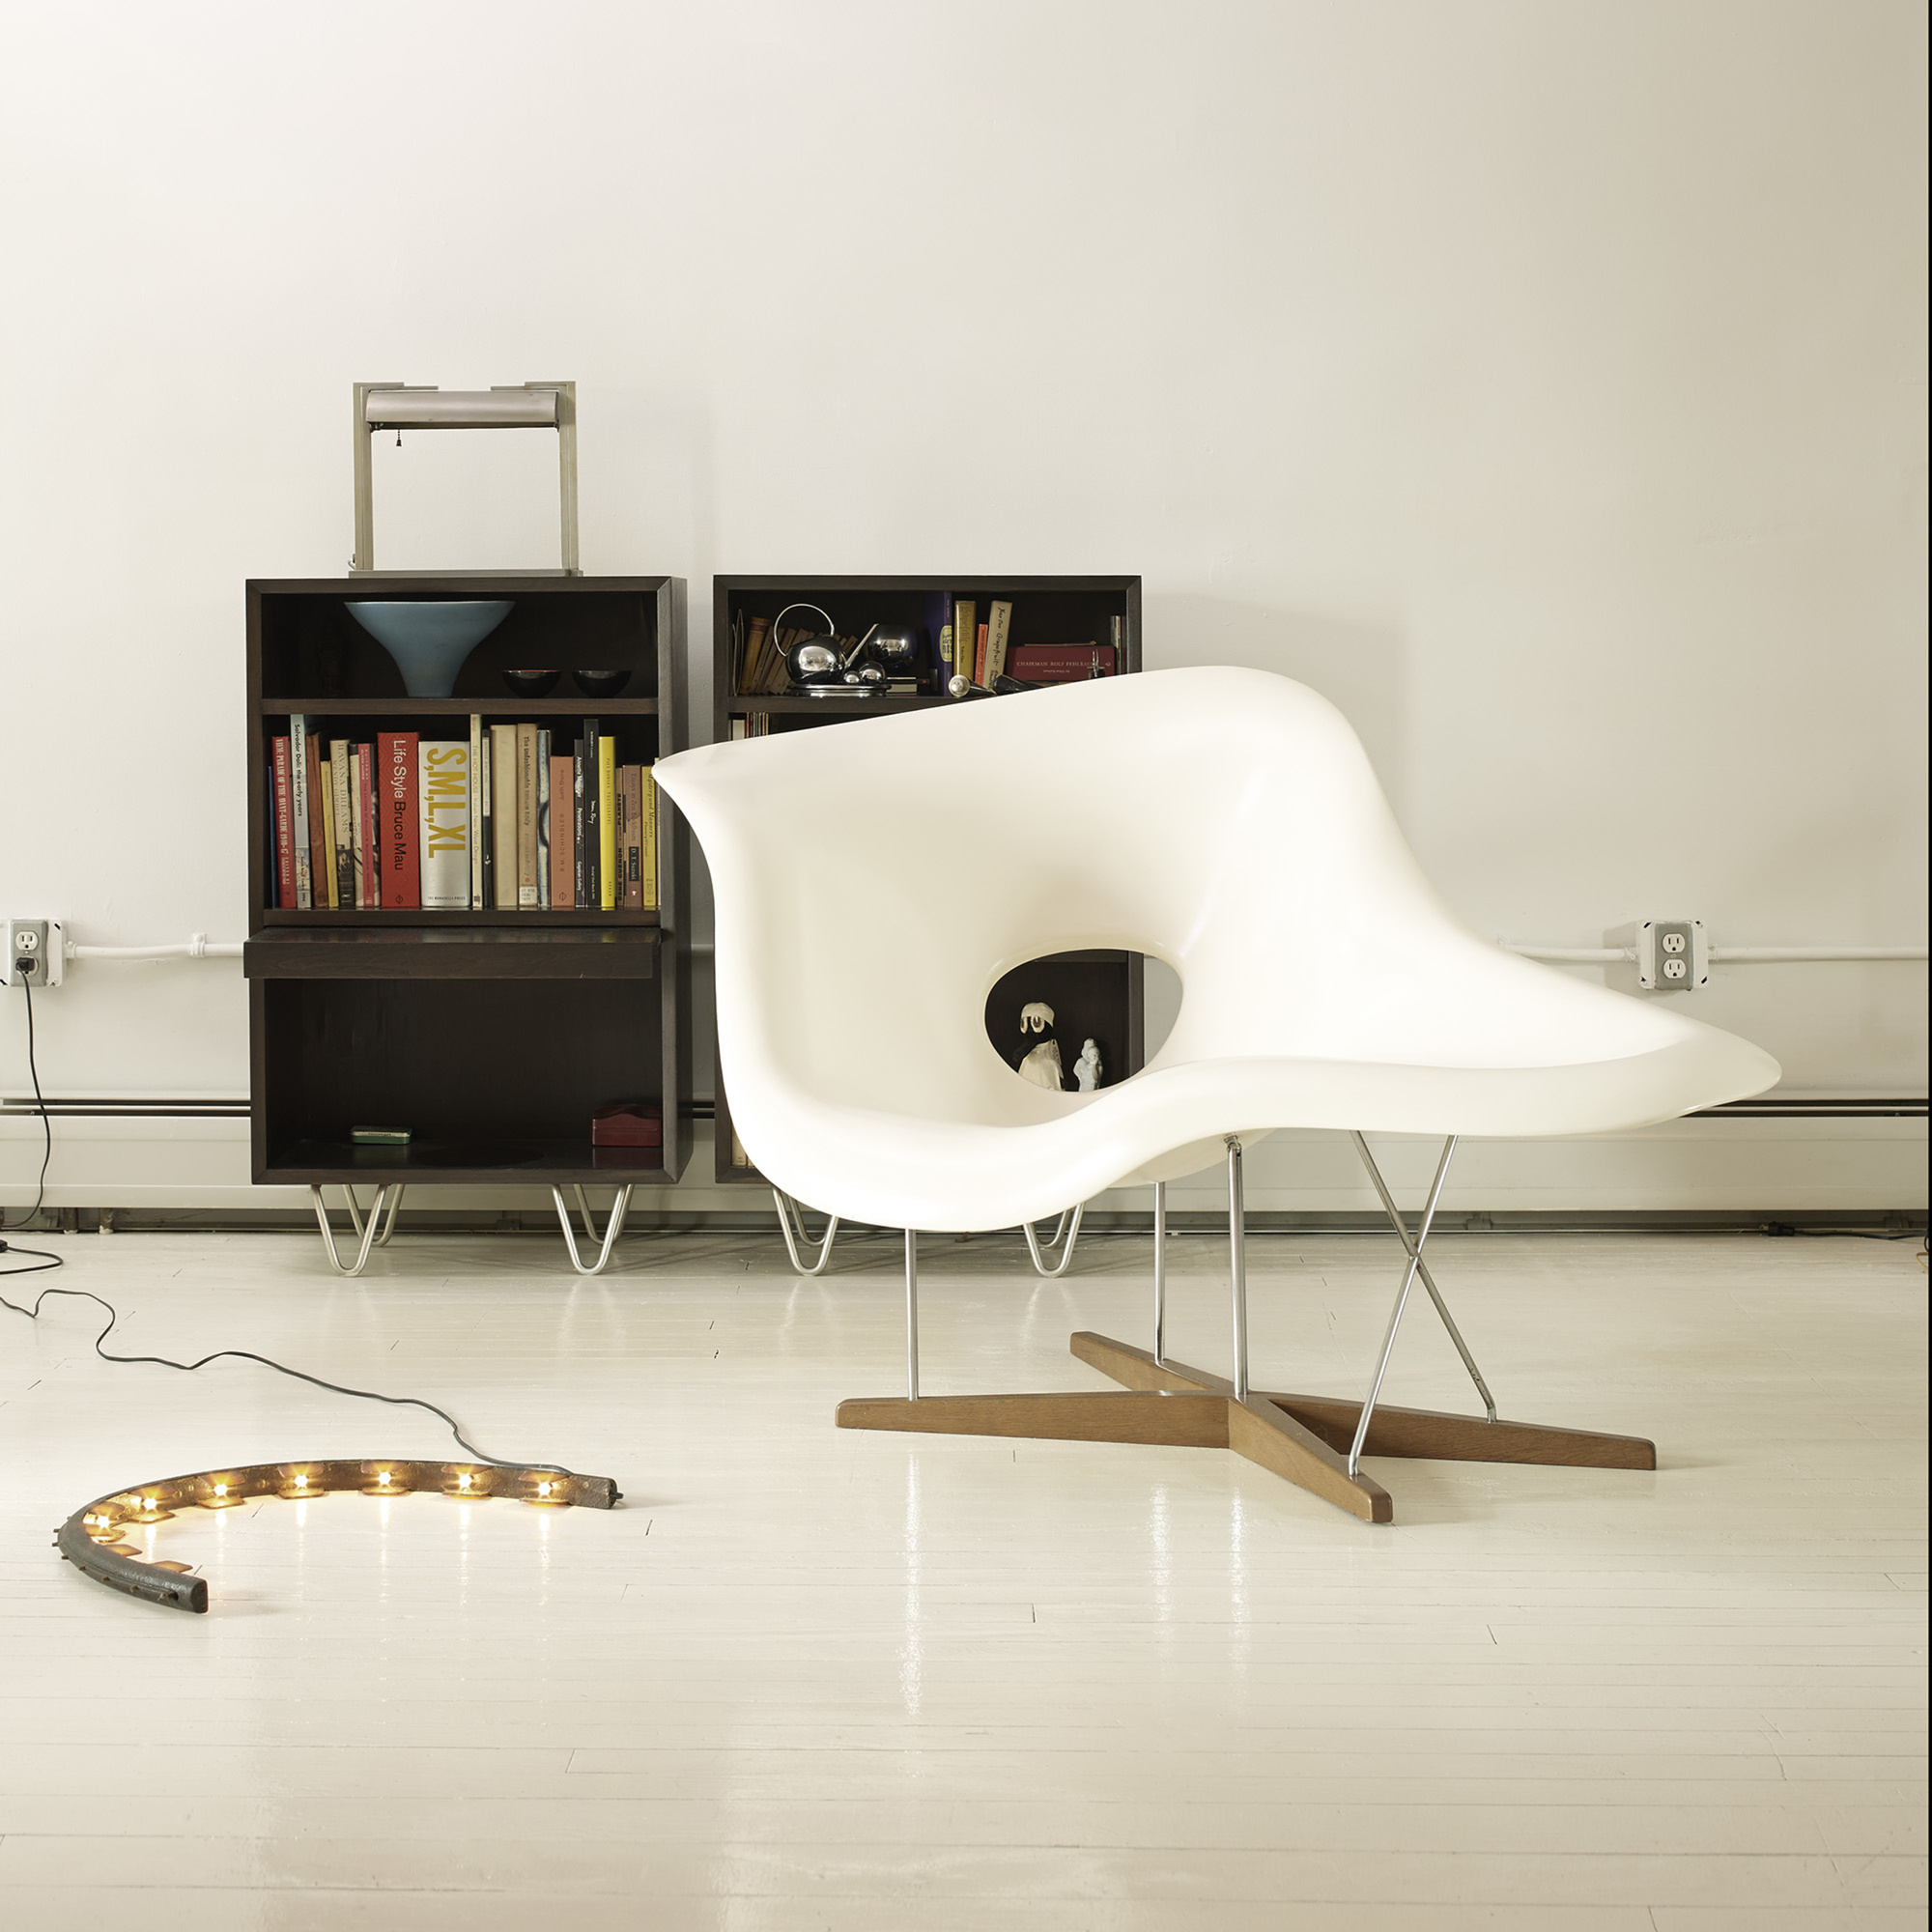 Chaise ray eames good chaise de bureau vitra charles u for Chaise eames rar vitra